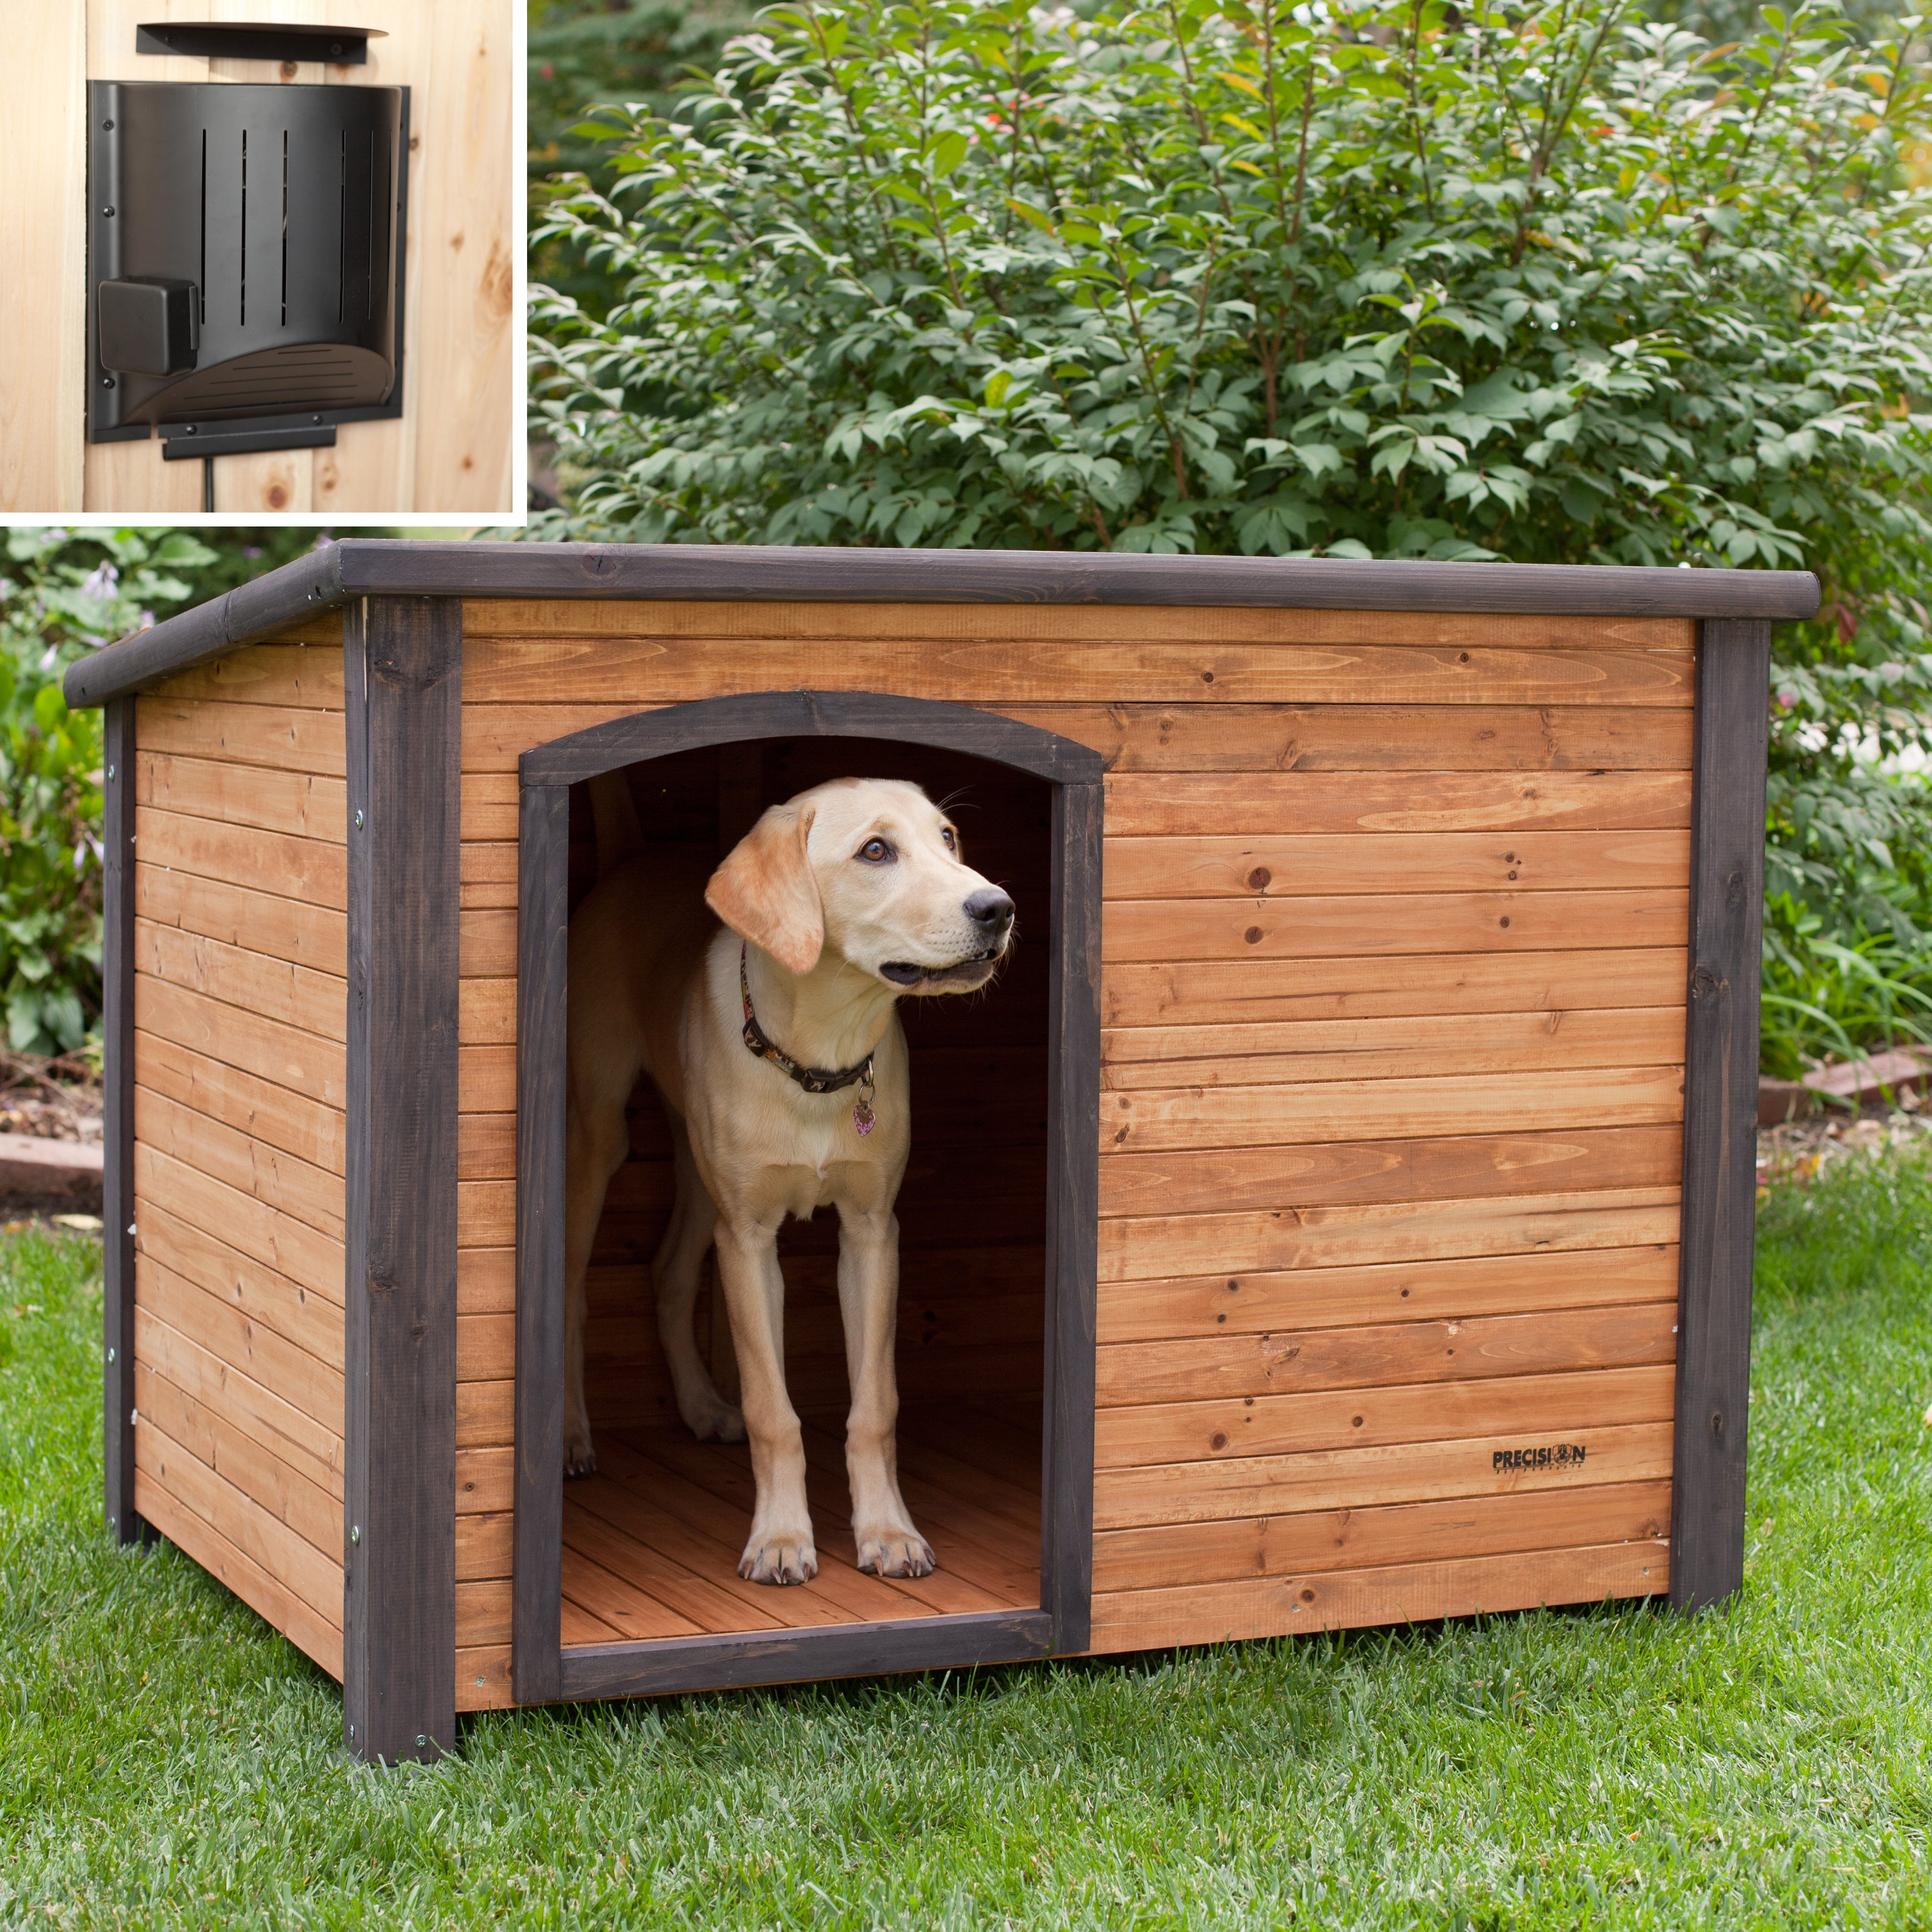 Pictures Of Dog Houses  Give New Inspirations When Selecting The Best House For Your Lovely Dog